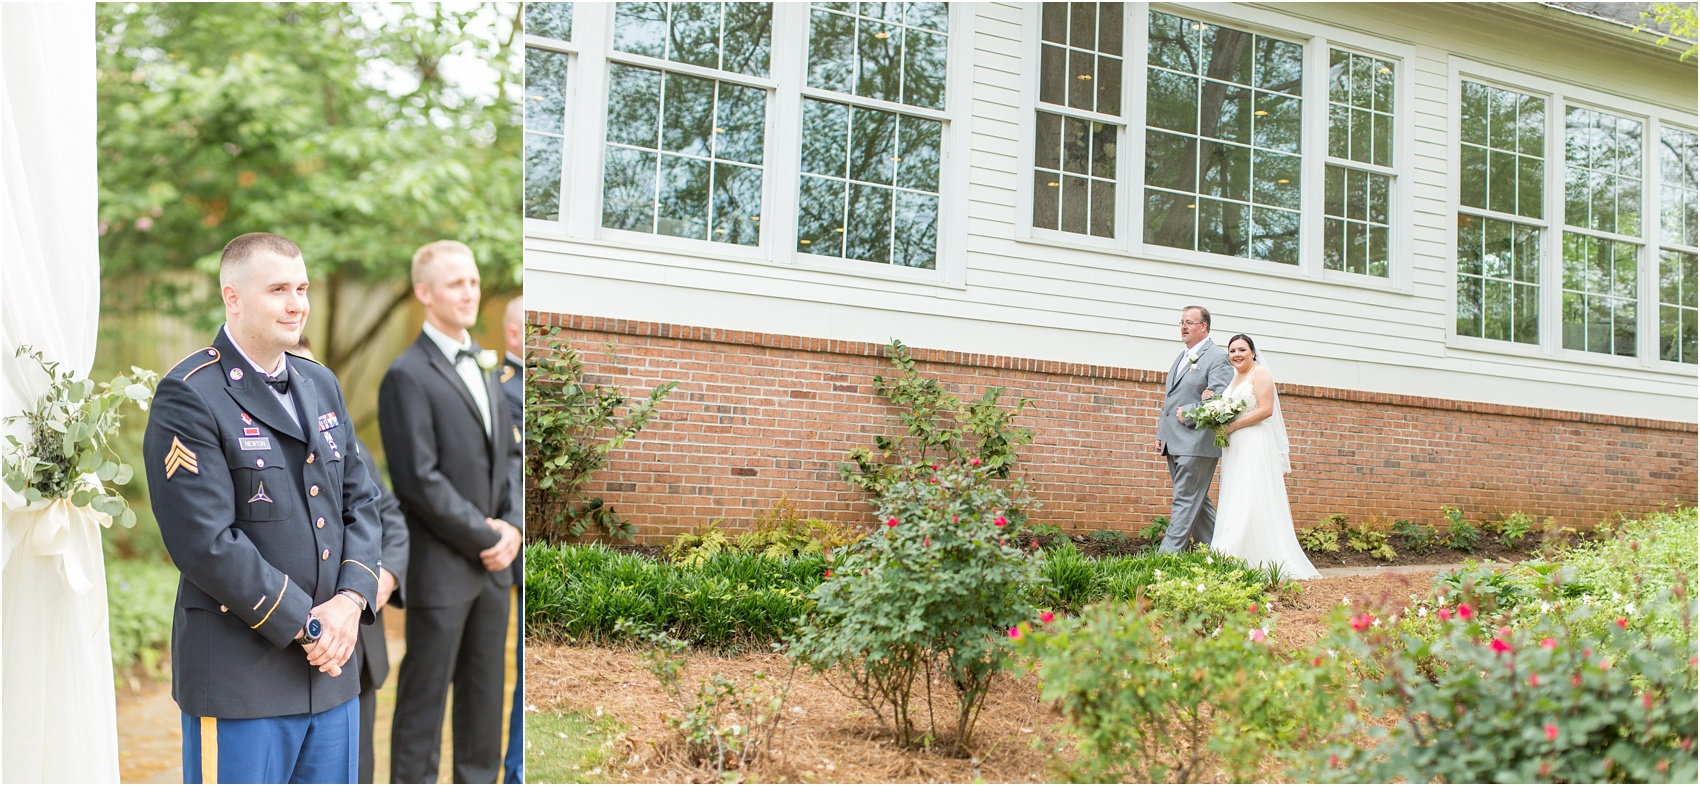 Savannah Eve Photography- Newton Wedding- Blog-89.jpg